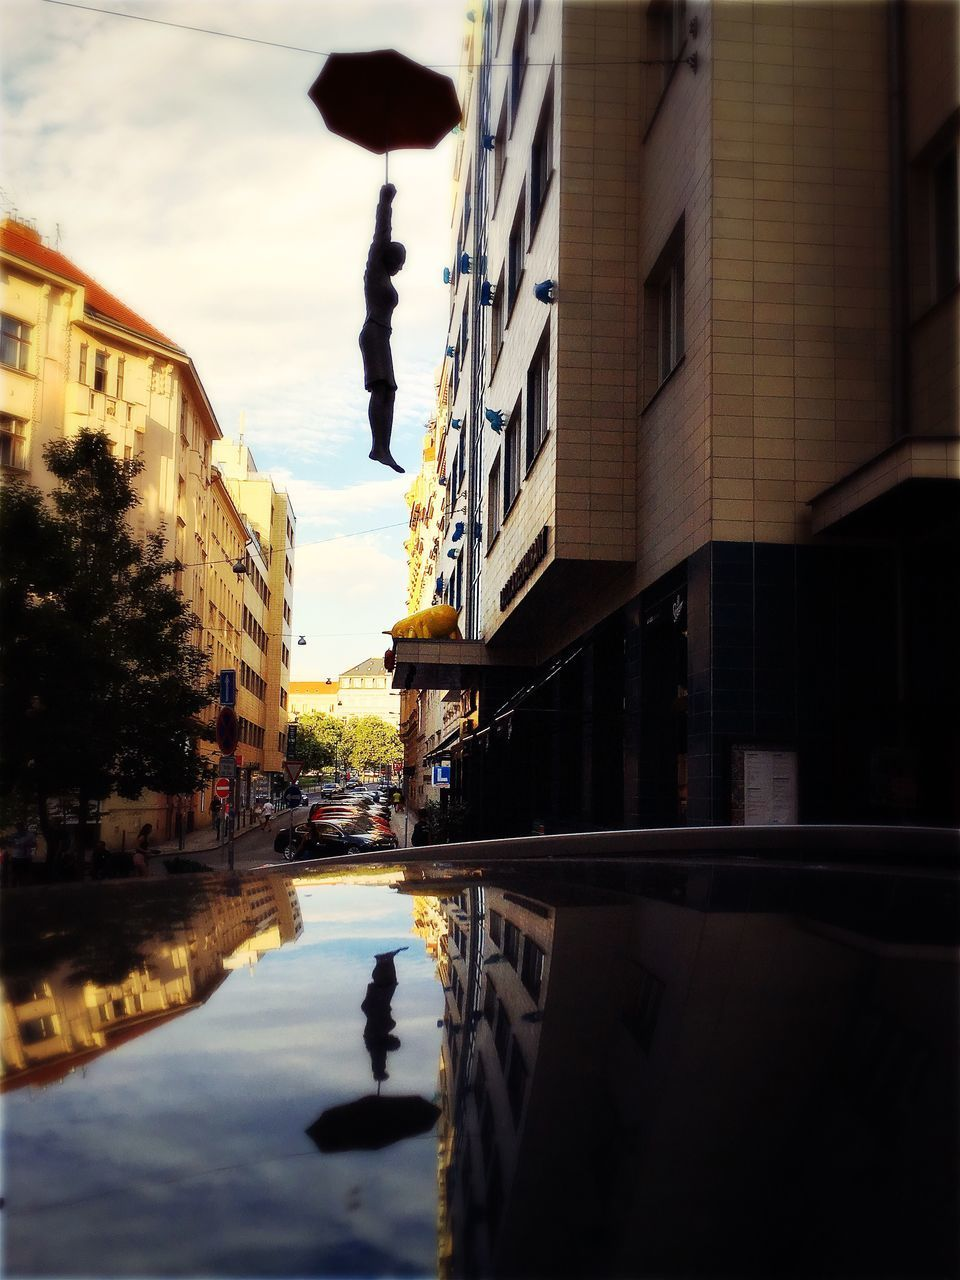 building exterior, architecture, built structure, city, reflection, water, building, puddle, transportation, sky, street, nature, mode of transportation, cloud - sky, real people, incidental people, residential district, outdoors, motor vehicle, canal, rain